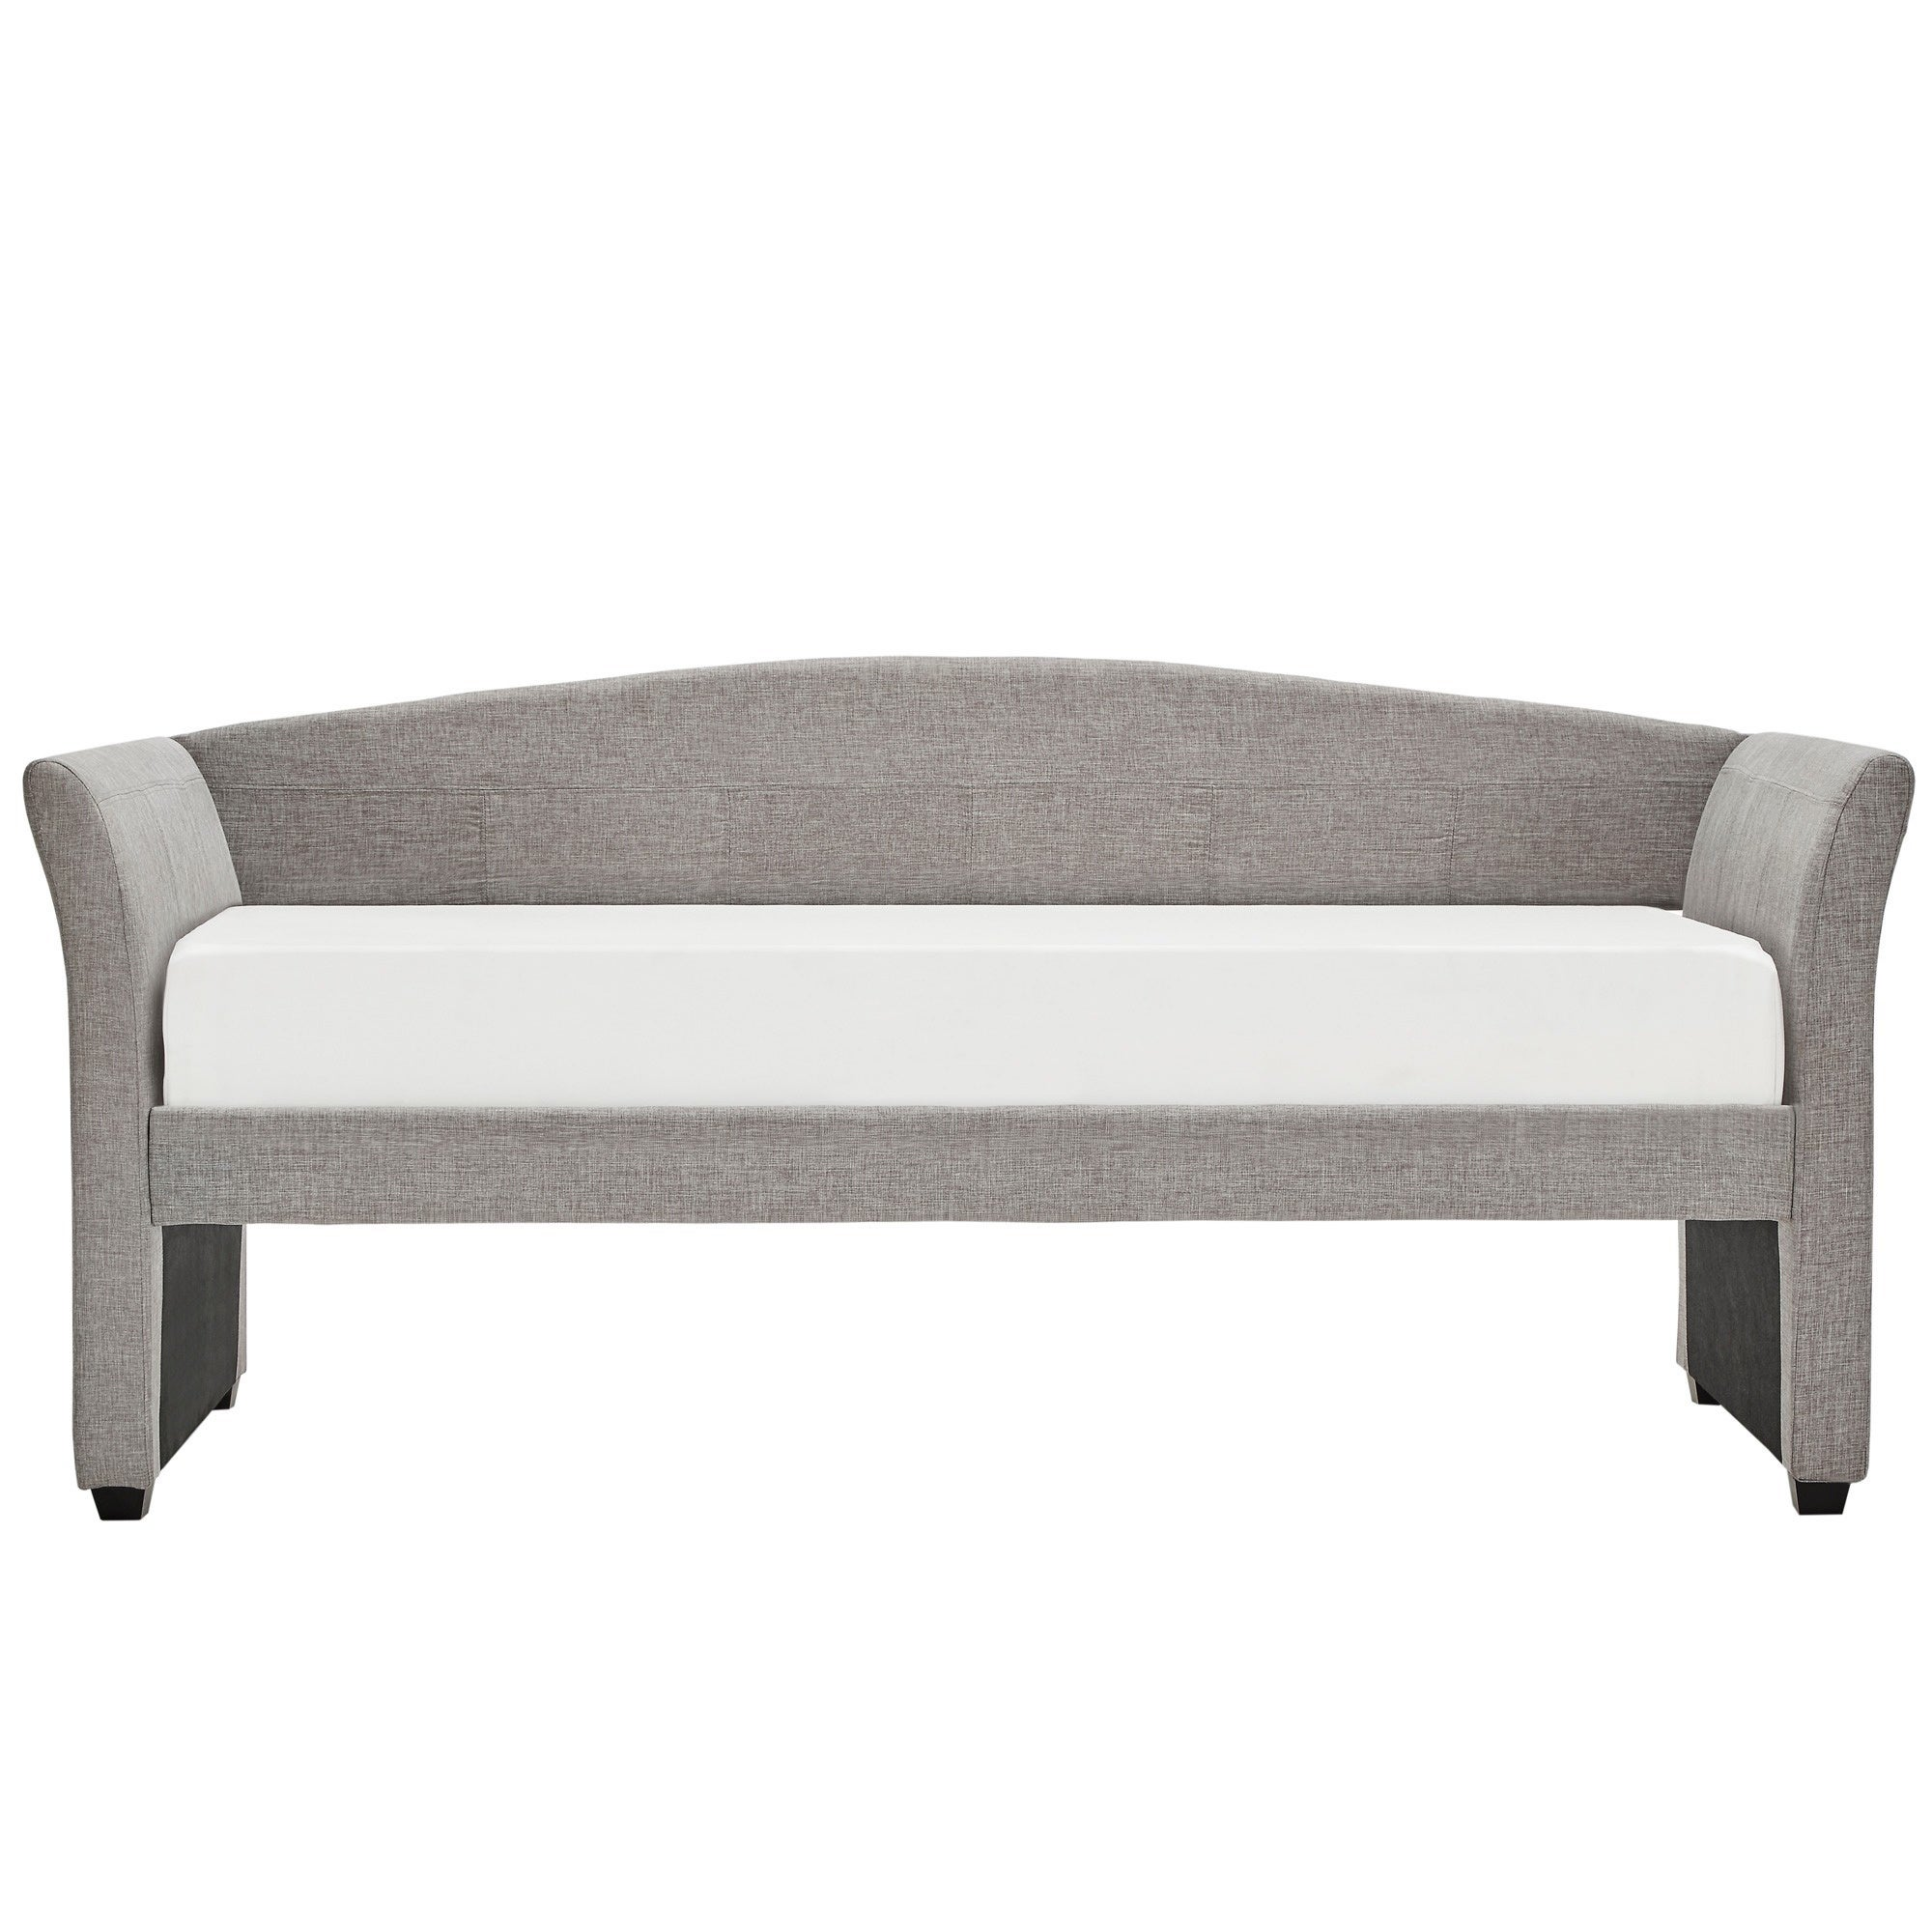 Deco Linen Rolled Arm Daybed and Trundle by iNSPIRE Q Bold - Free Shipping  Today - Overstock.com - 15561045